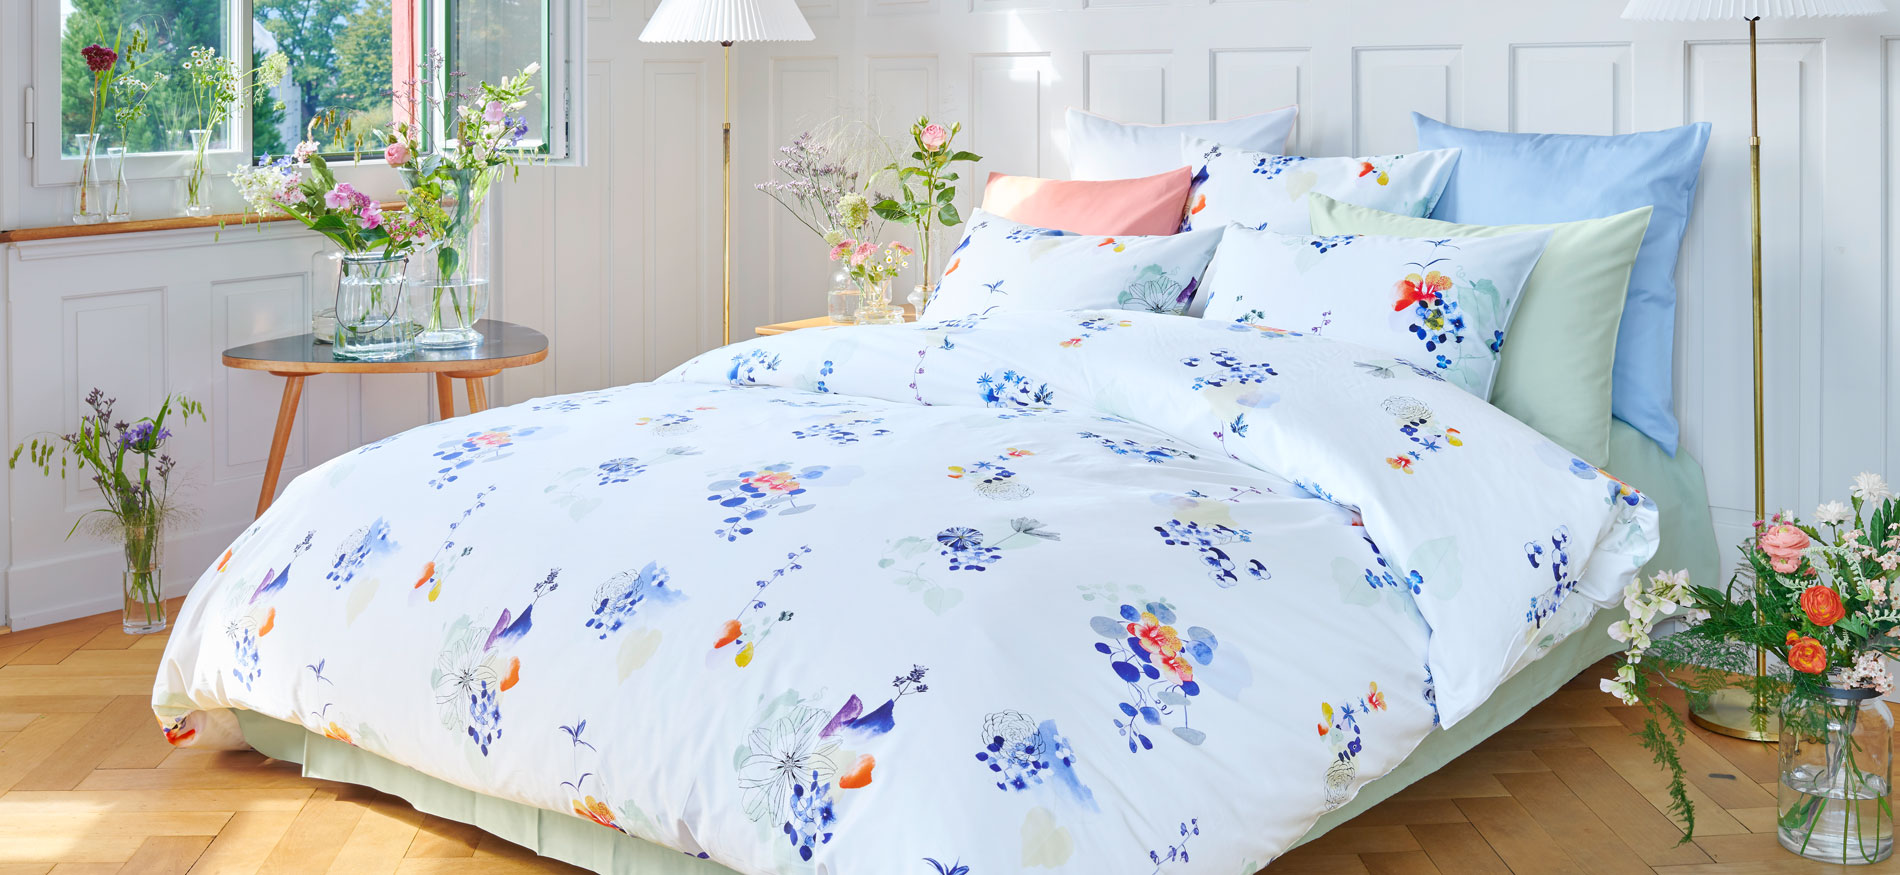 Christian Fischbacher Bed Linen